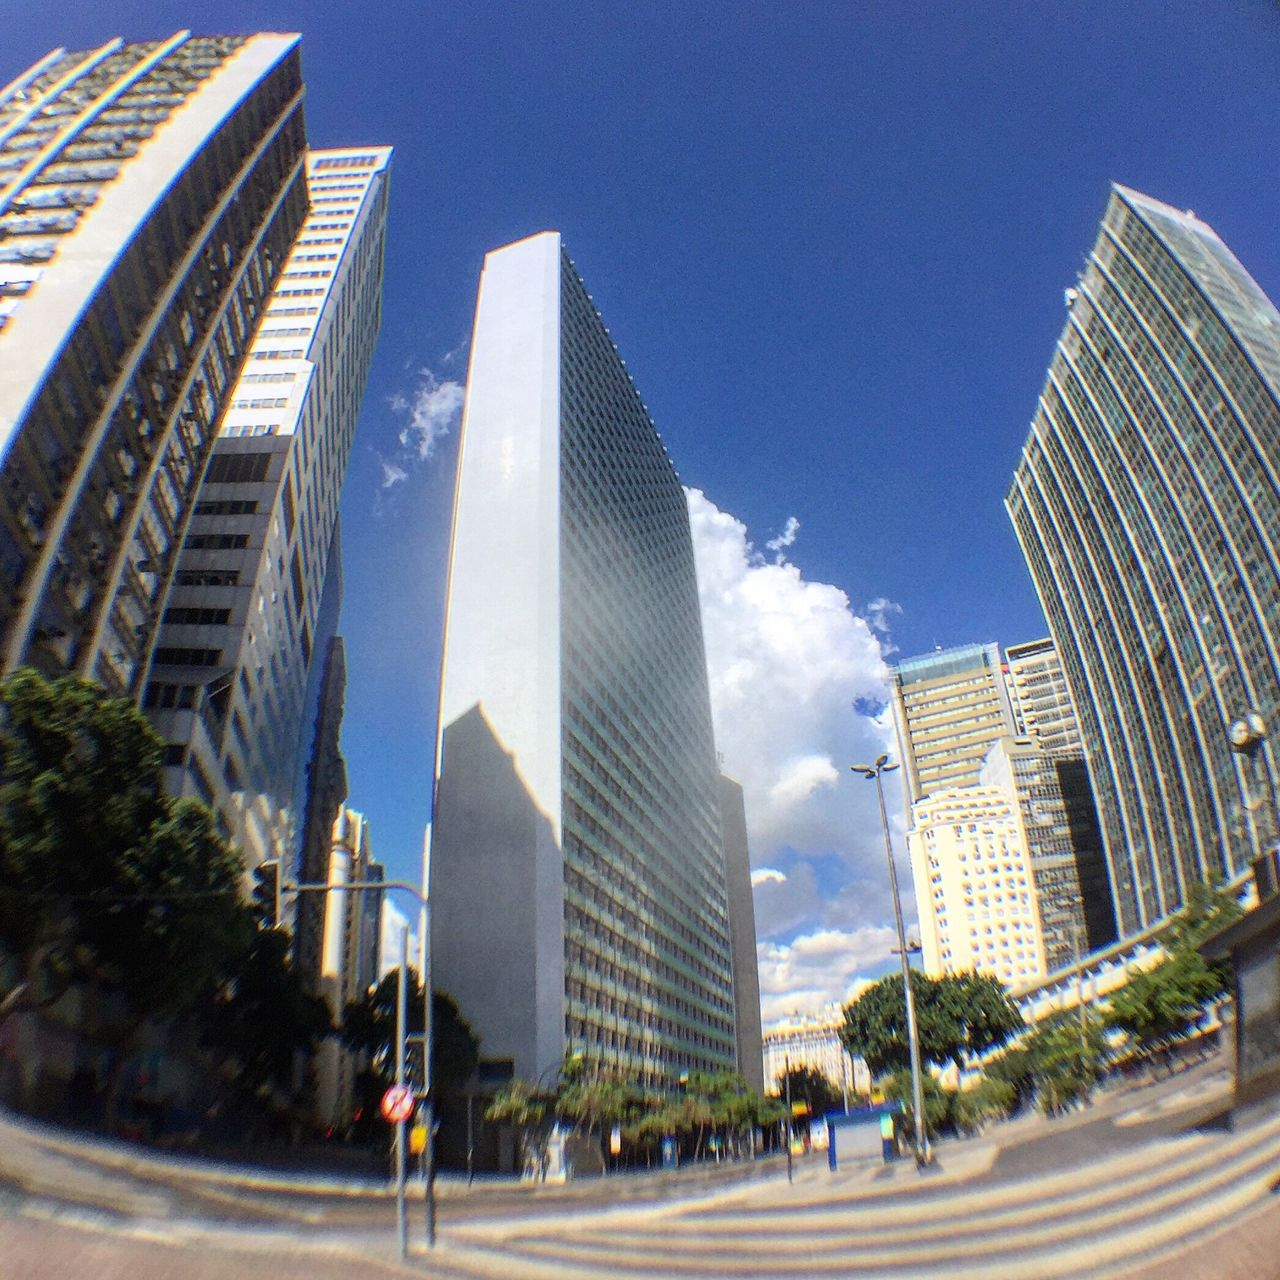 architecture, skyscraper, building exterior, city, built structure, modern, outdoors, city life, day, real people, sky, tree, travel destinations, clear sky, cityscape